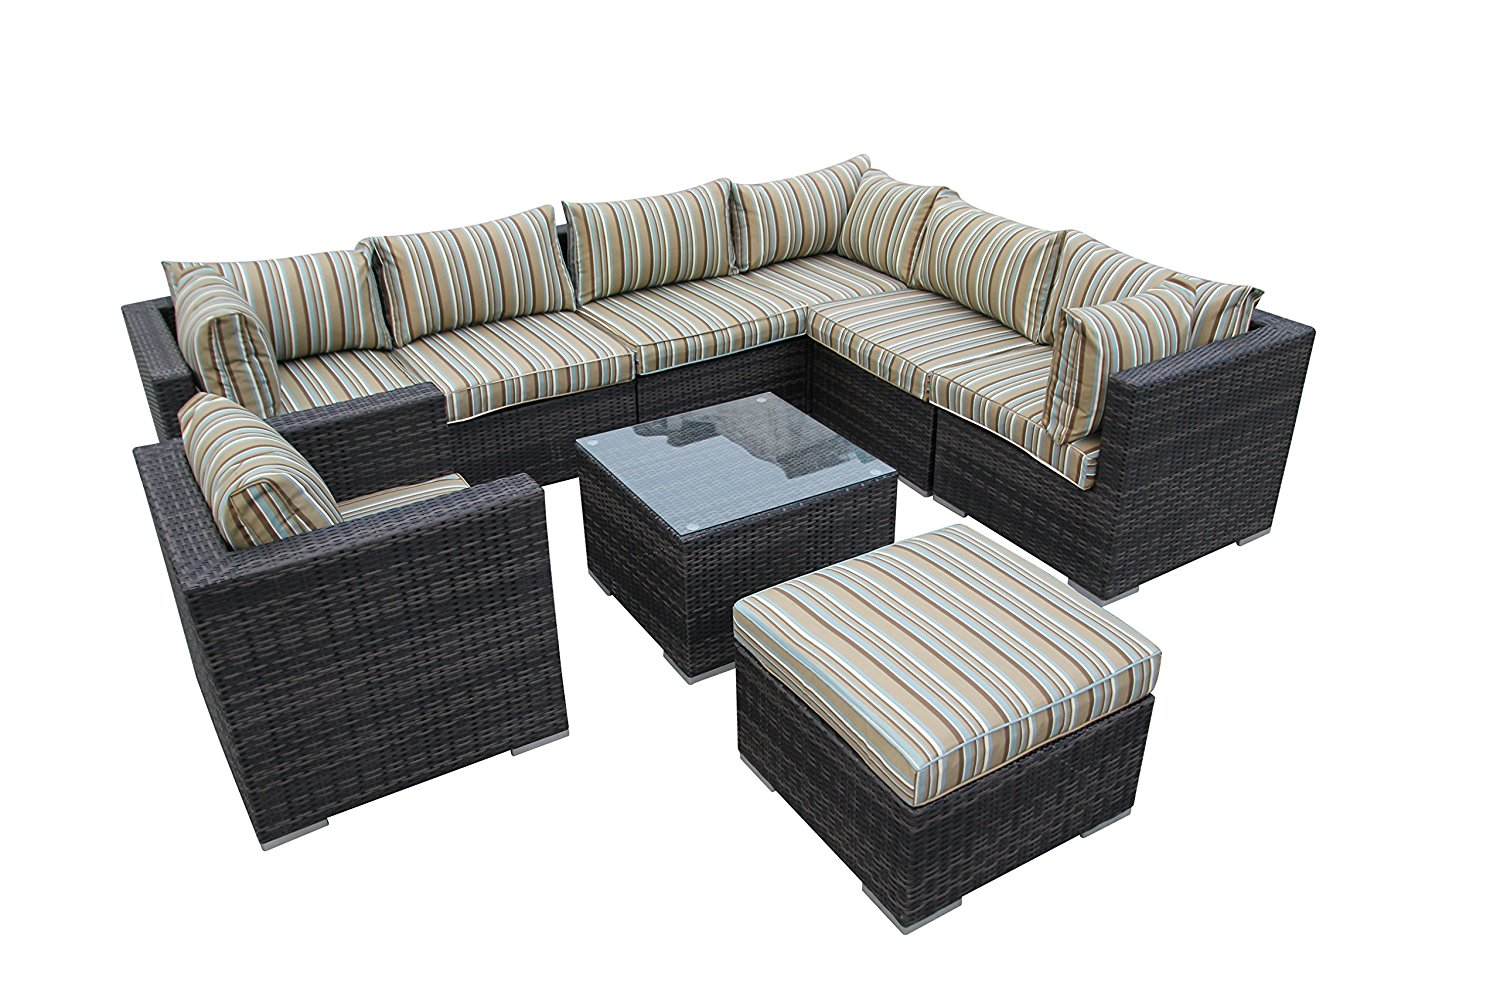 Get Quotations · 9pcs Wicker Patio Sofa Set Outdoor Rattan Furniture  Modular Sofa Set